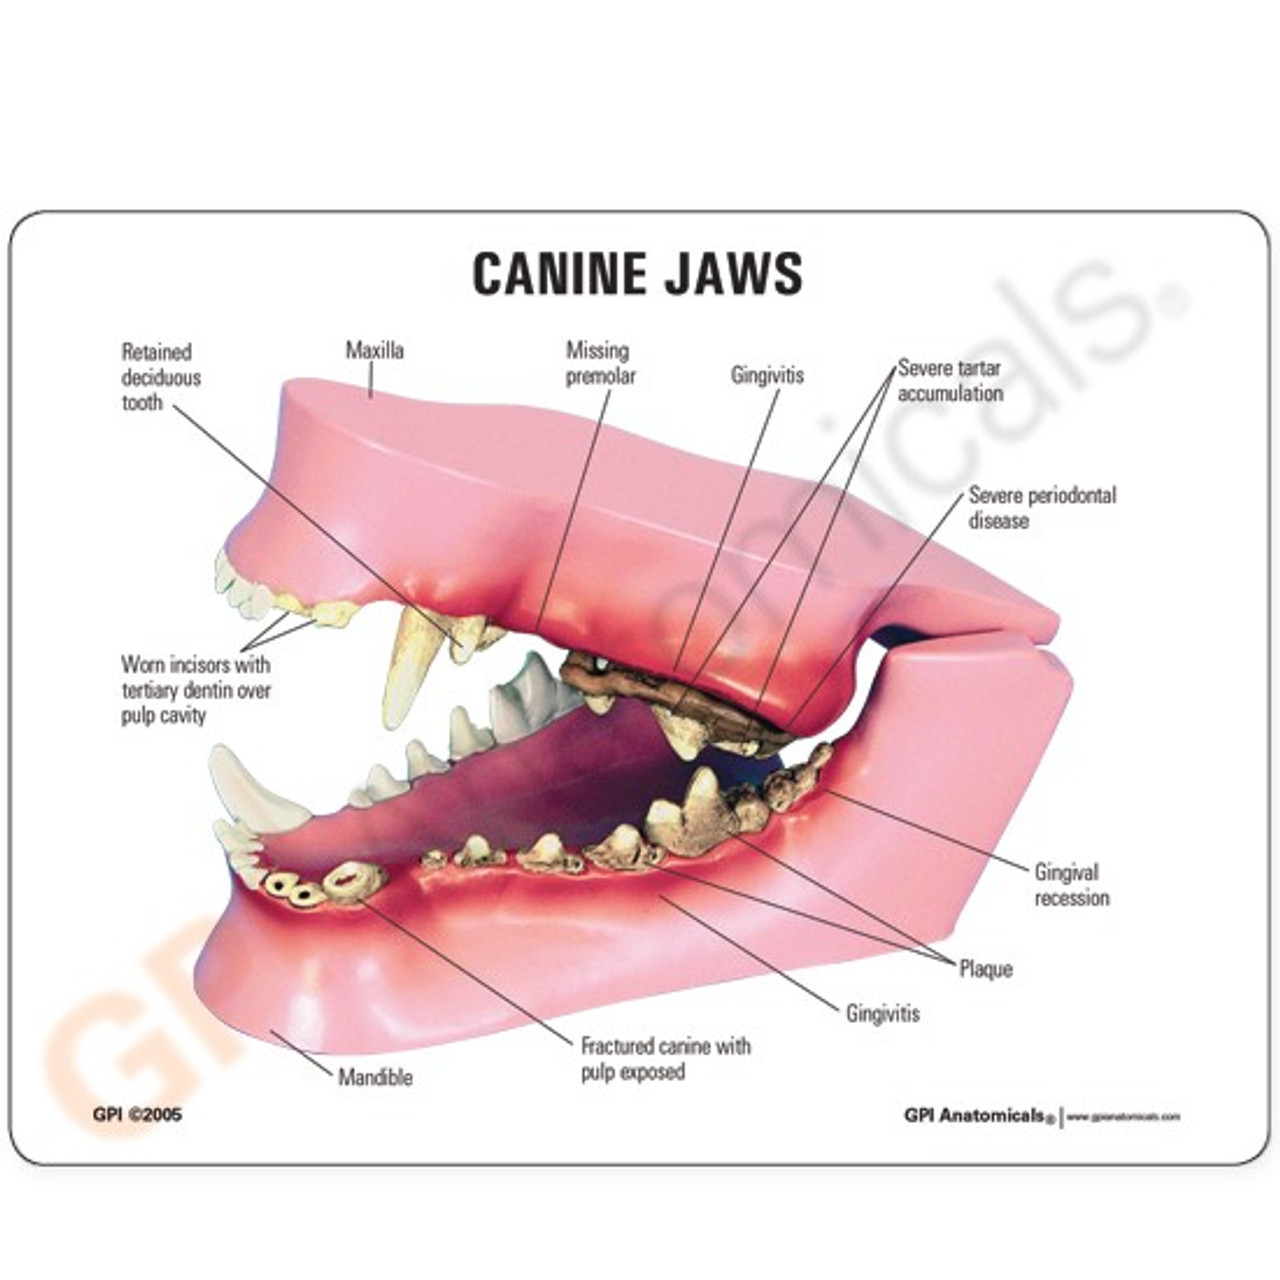 Canine Jaw Model Description Card